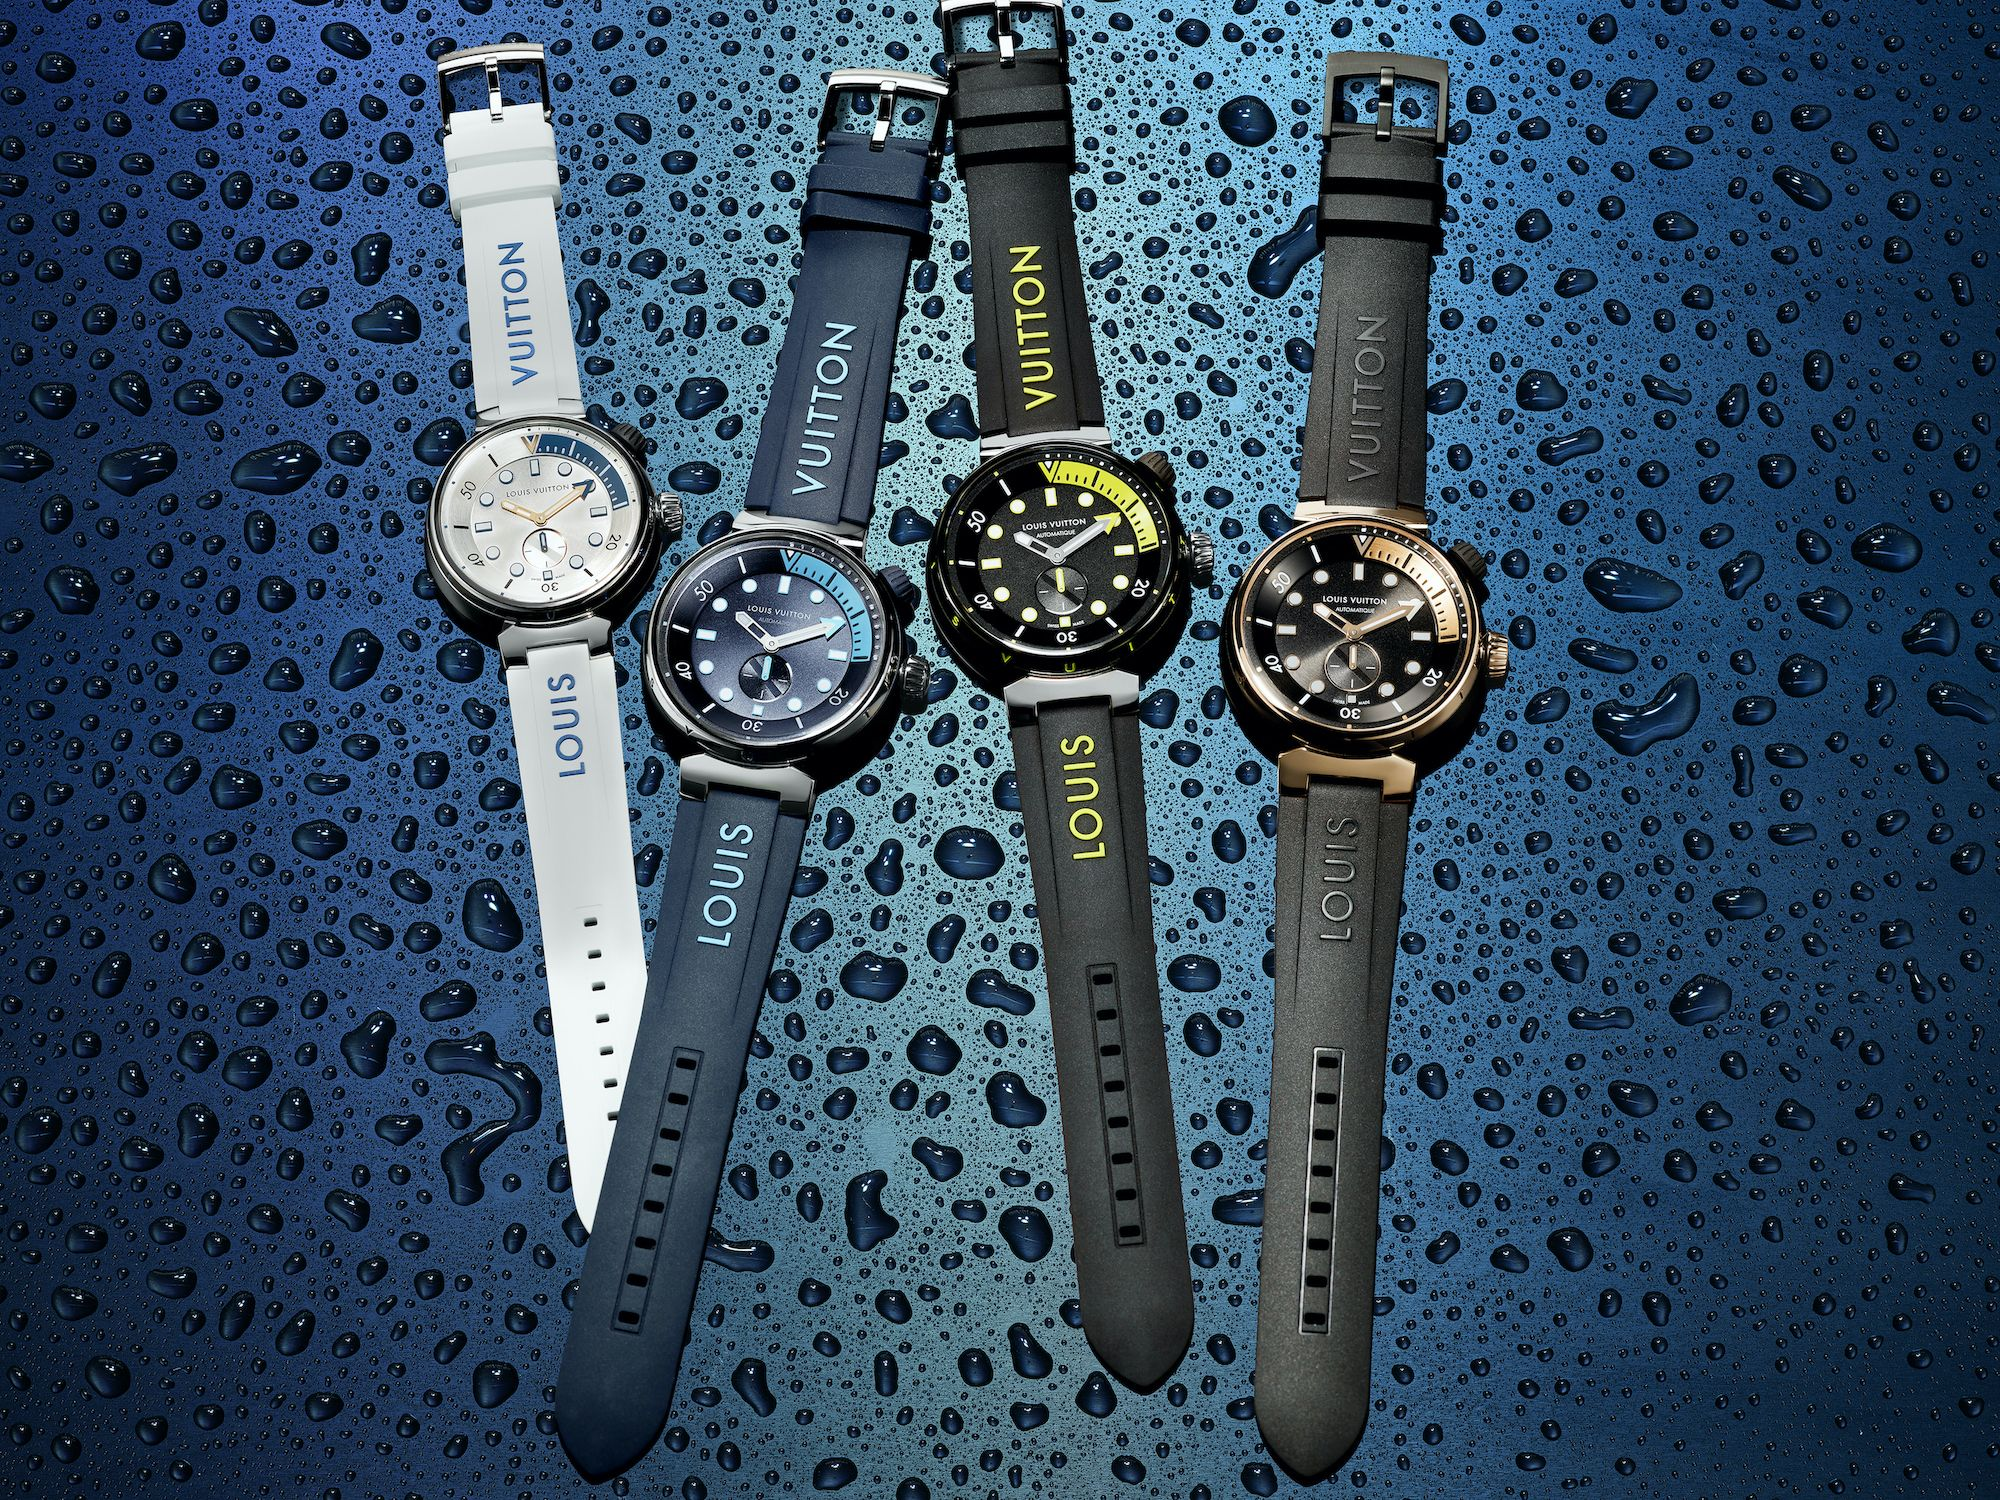 Louis Vuitton's Tambour Street Diver Takes On A Sporty Look